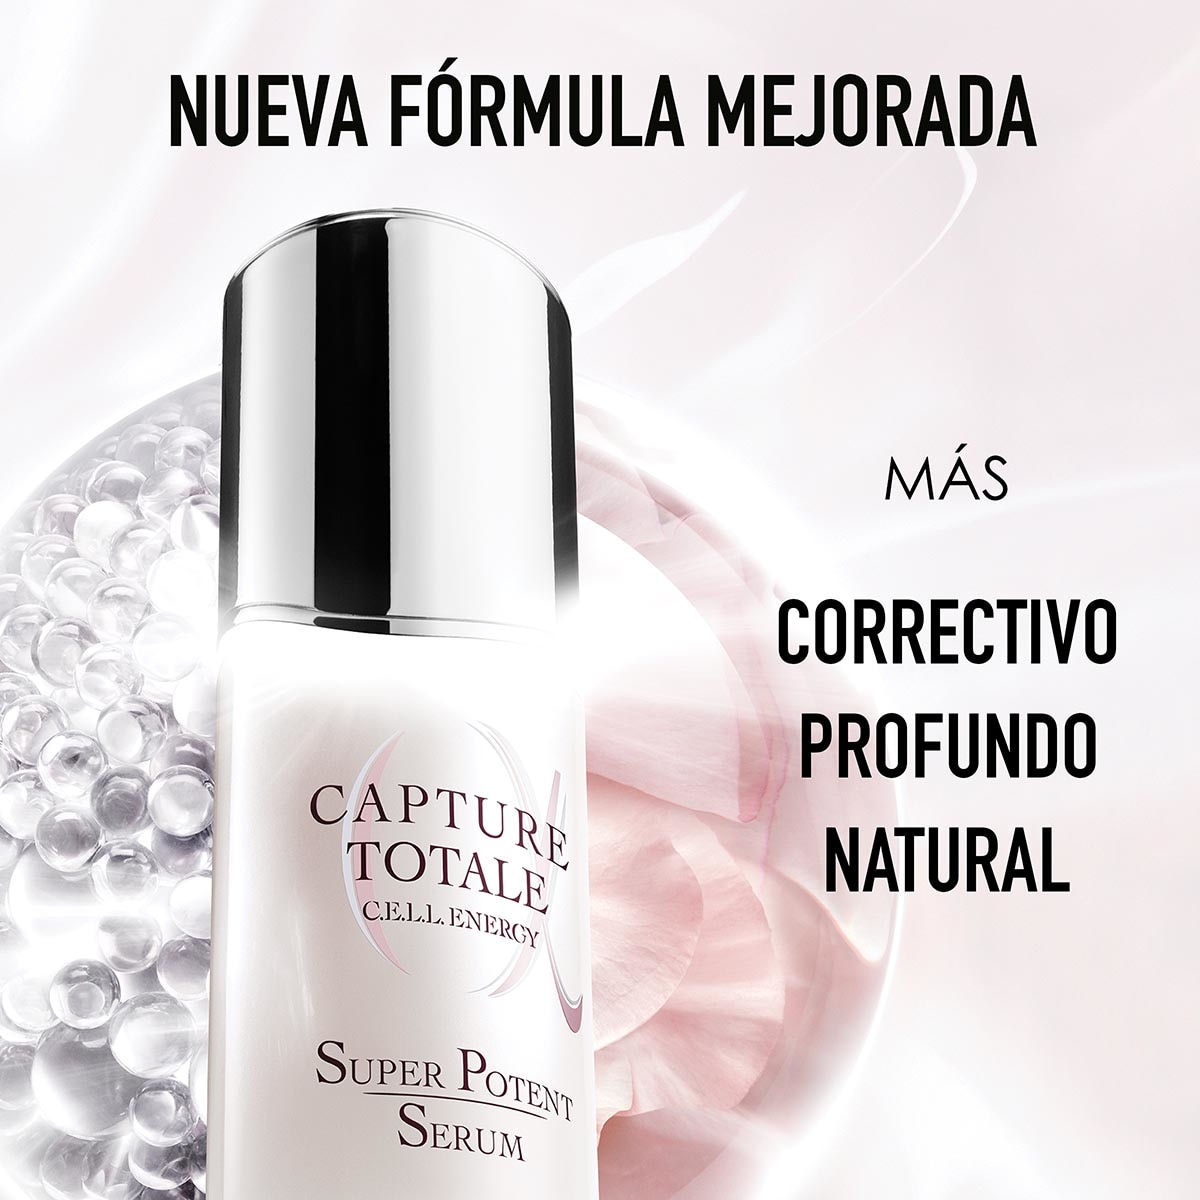 CAPTURE TOTALE SUPER POTENT AGE-DEFYING INTENSE SERUM 50ML